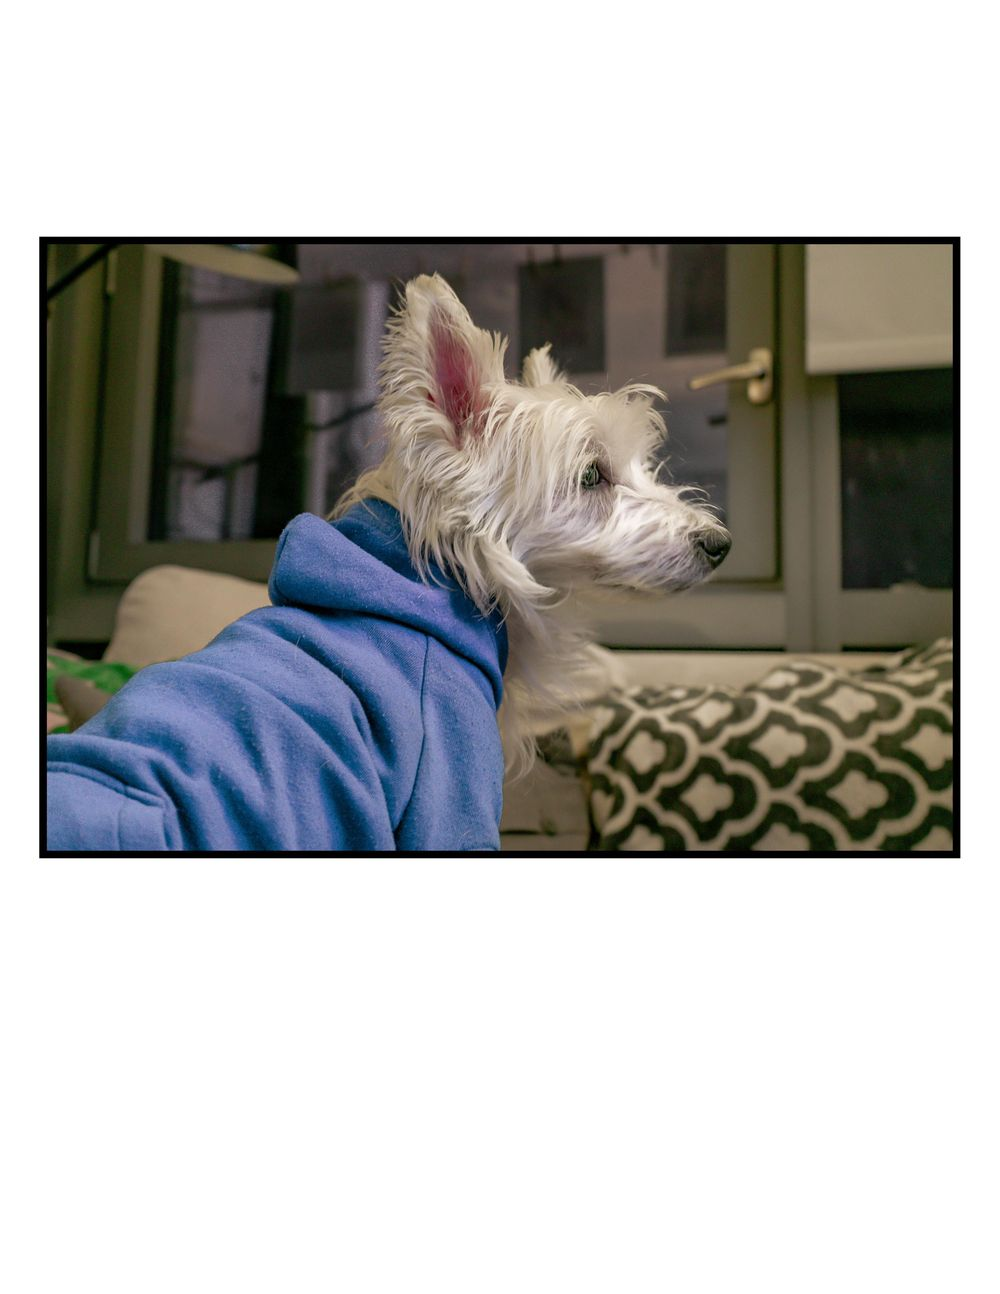 My dog Bastian, is really a grumpy old man. - image 2 - student project